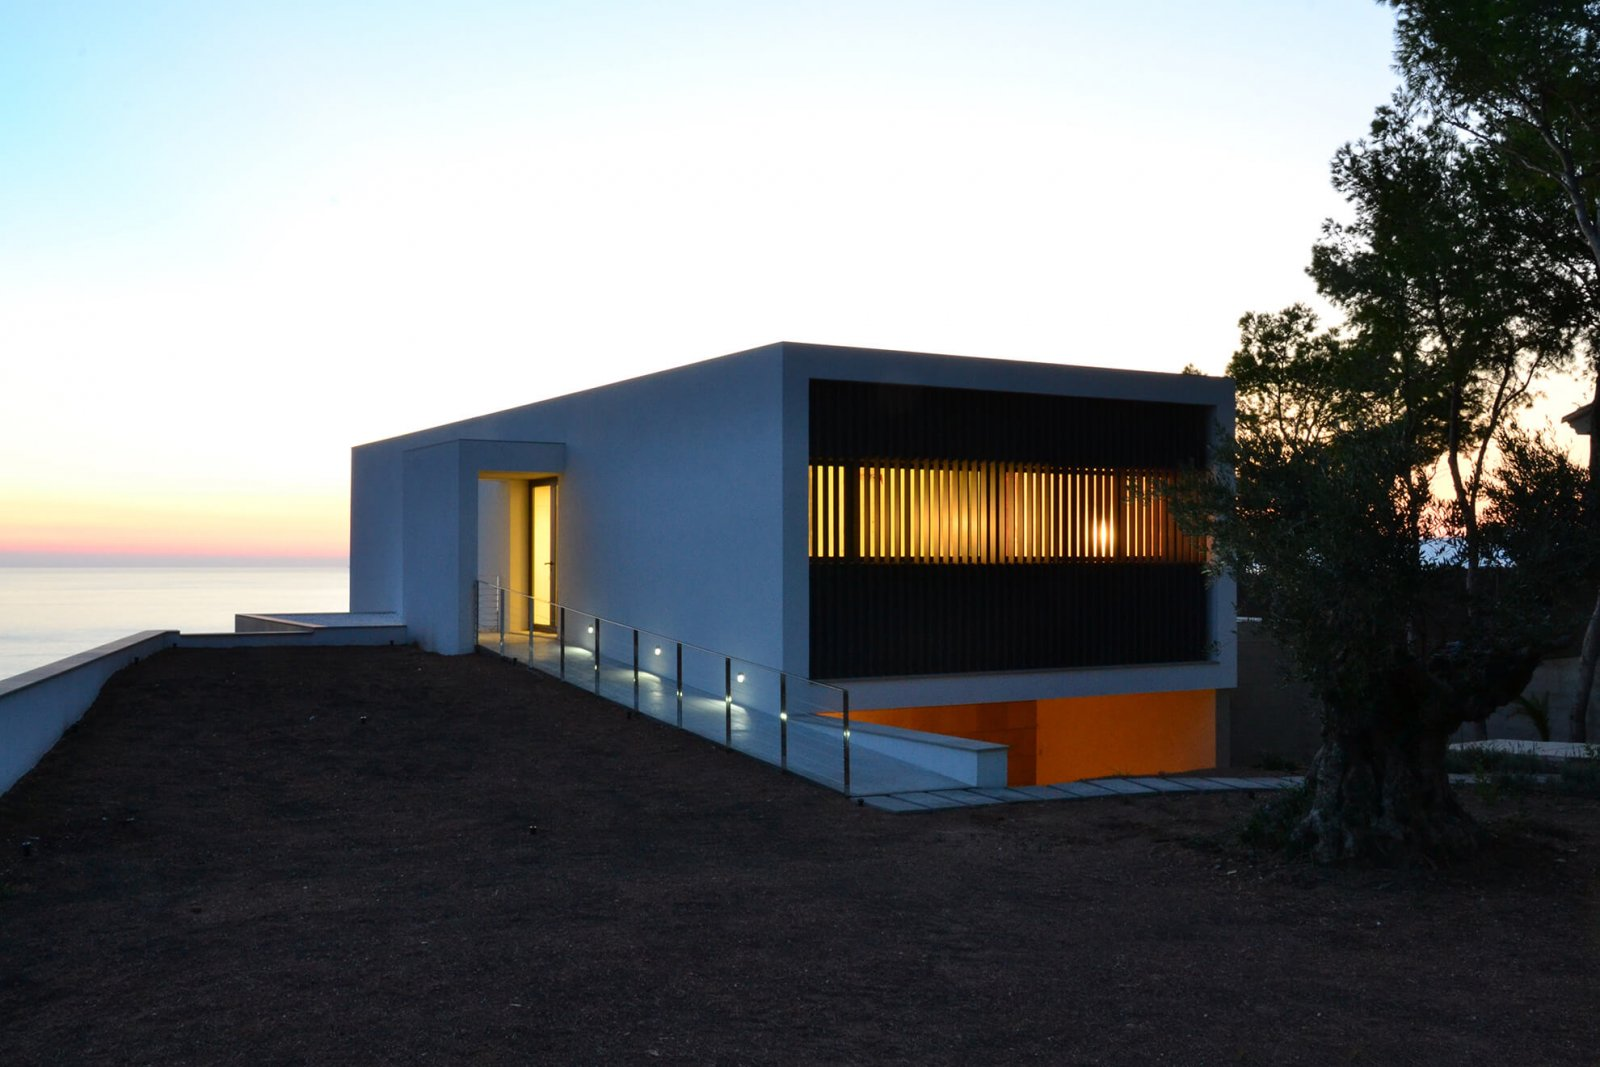 View of the facade of the Maioris house at sunset